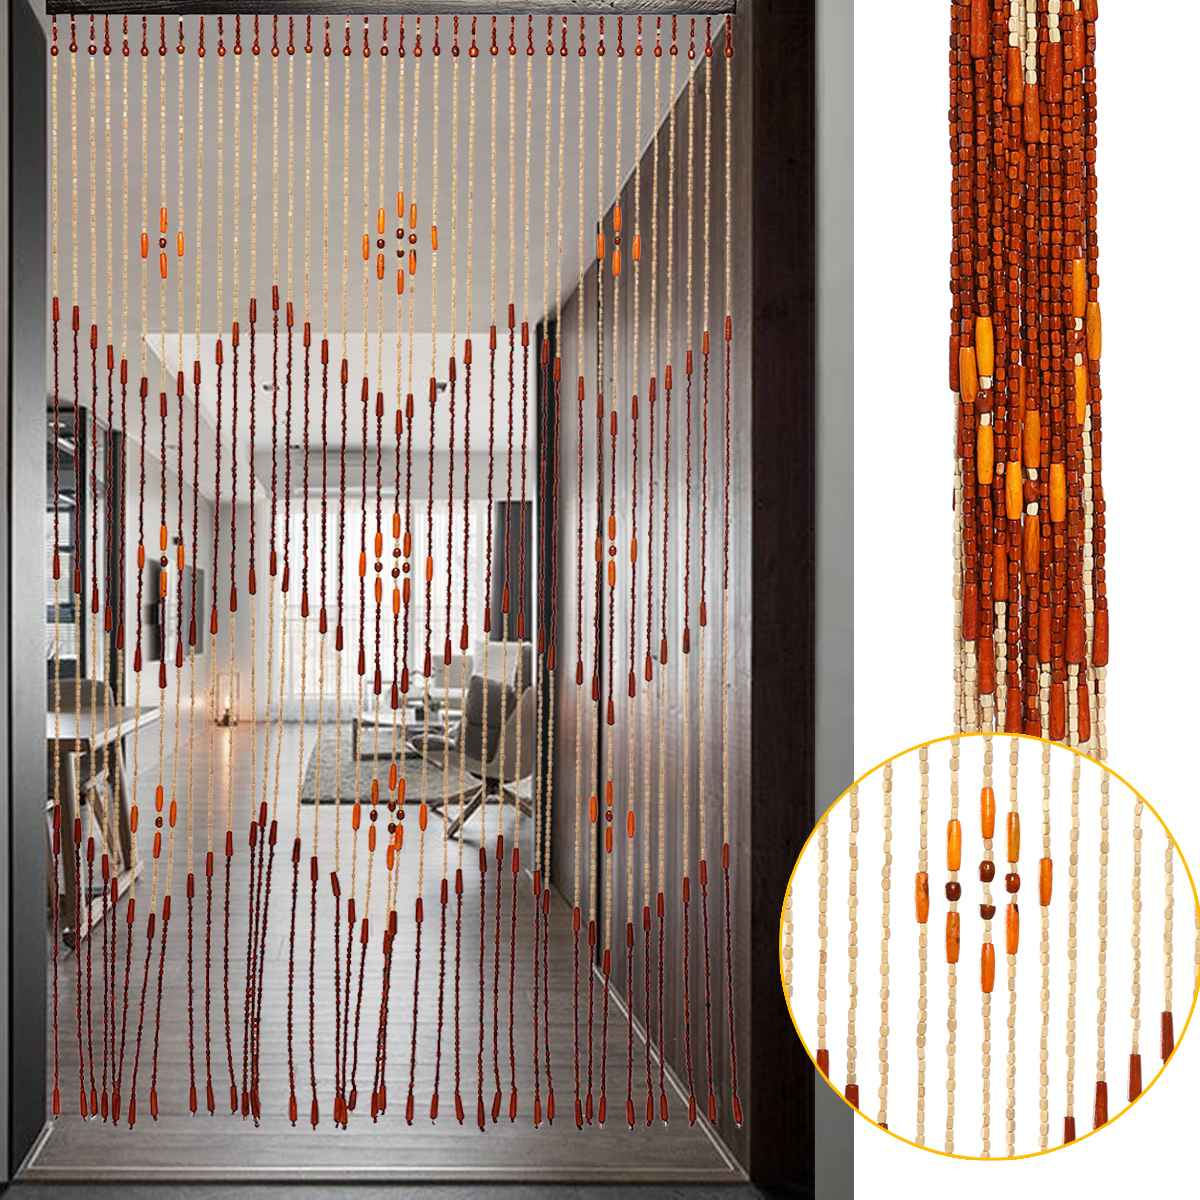 Blinds Door-Curtain Fly-Screen Room-Divider Beads Wooden Fashion Handmade 90x175cm-38 title=